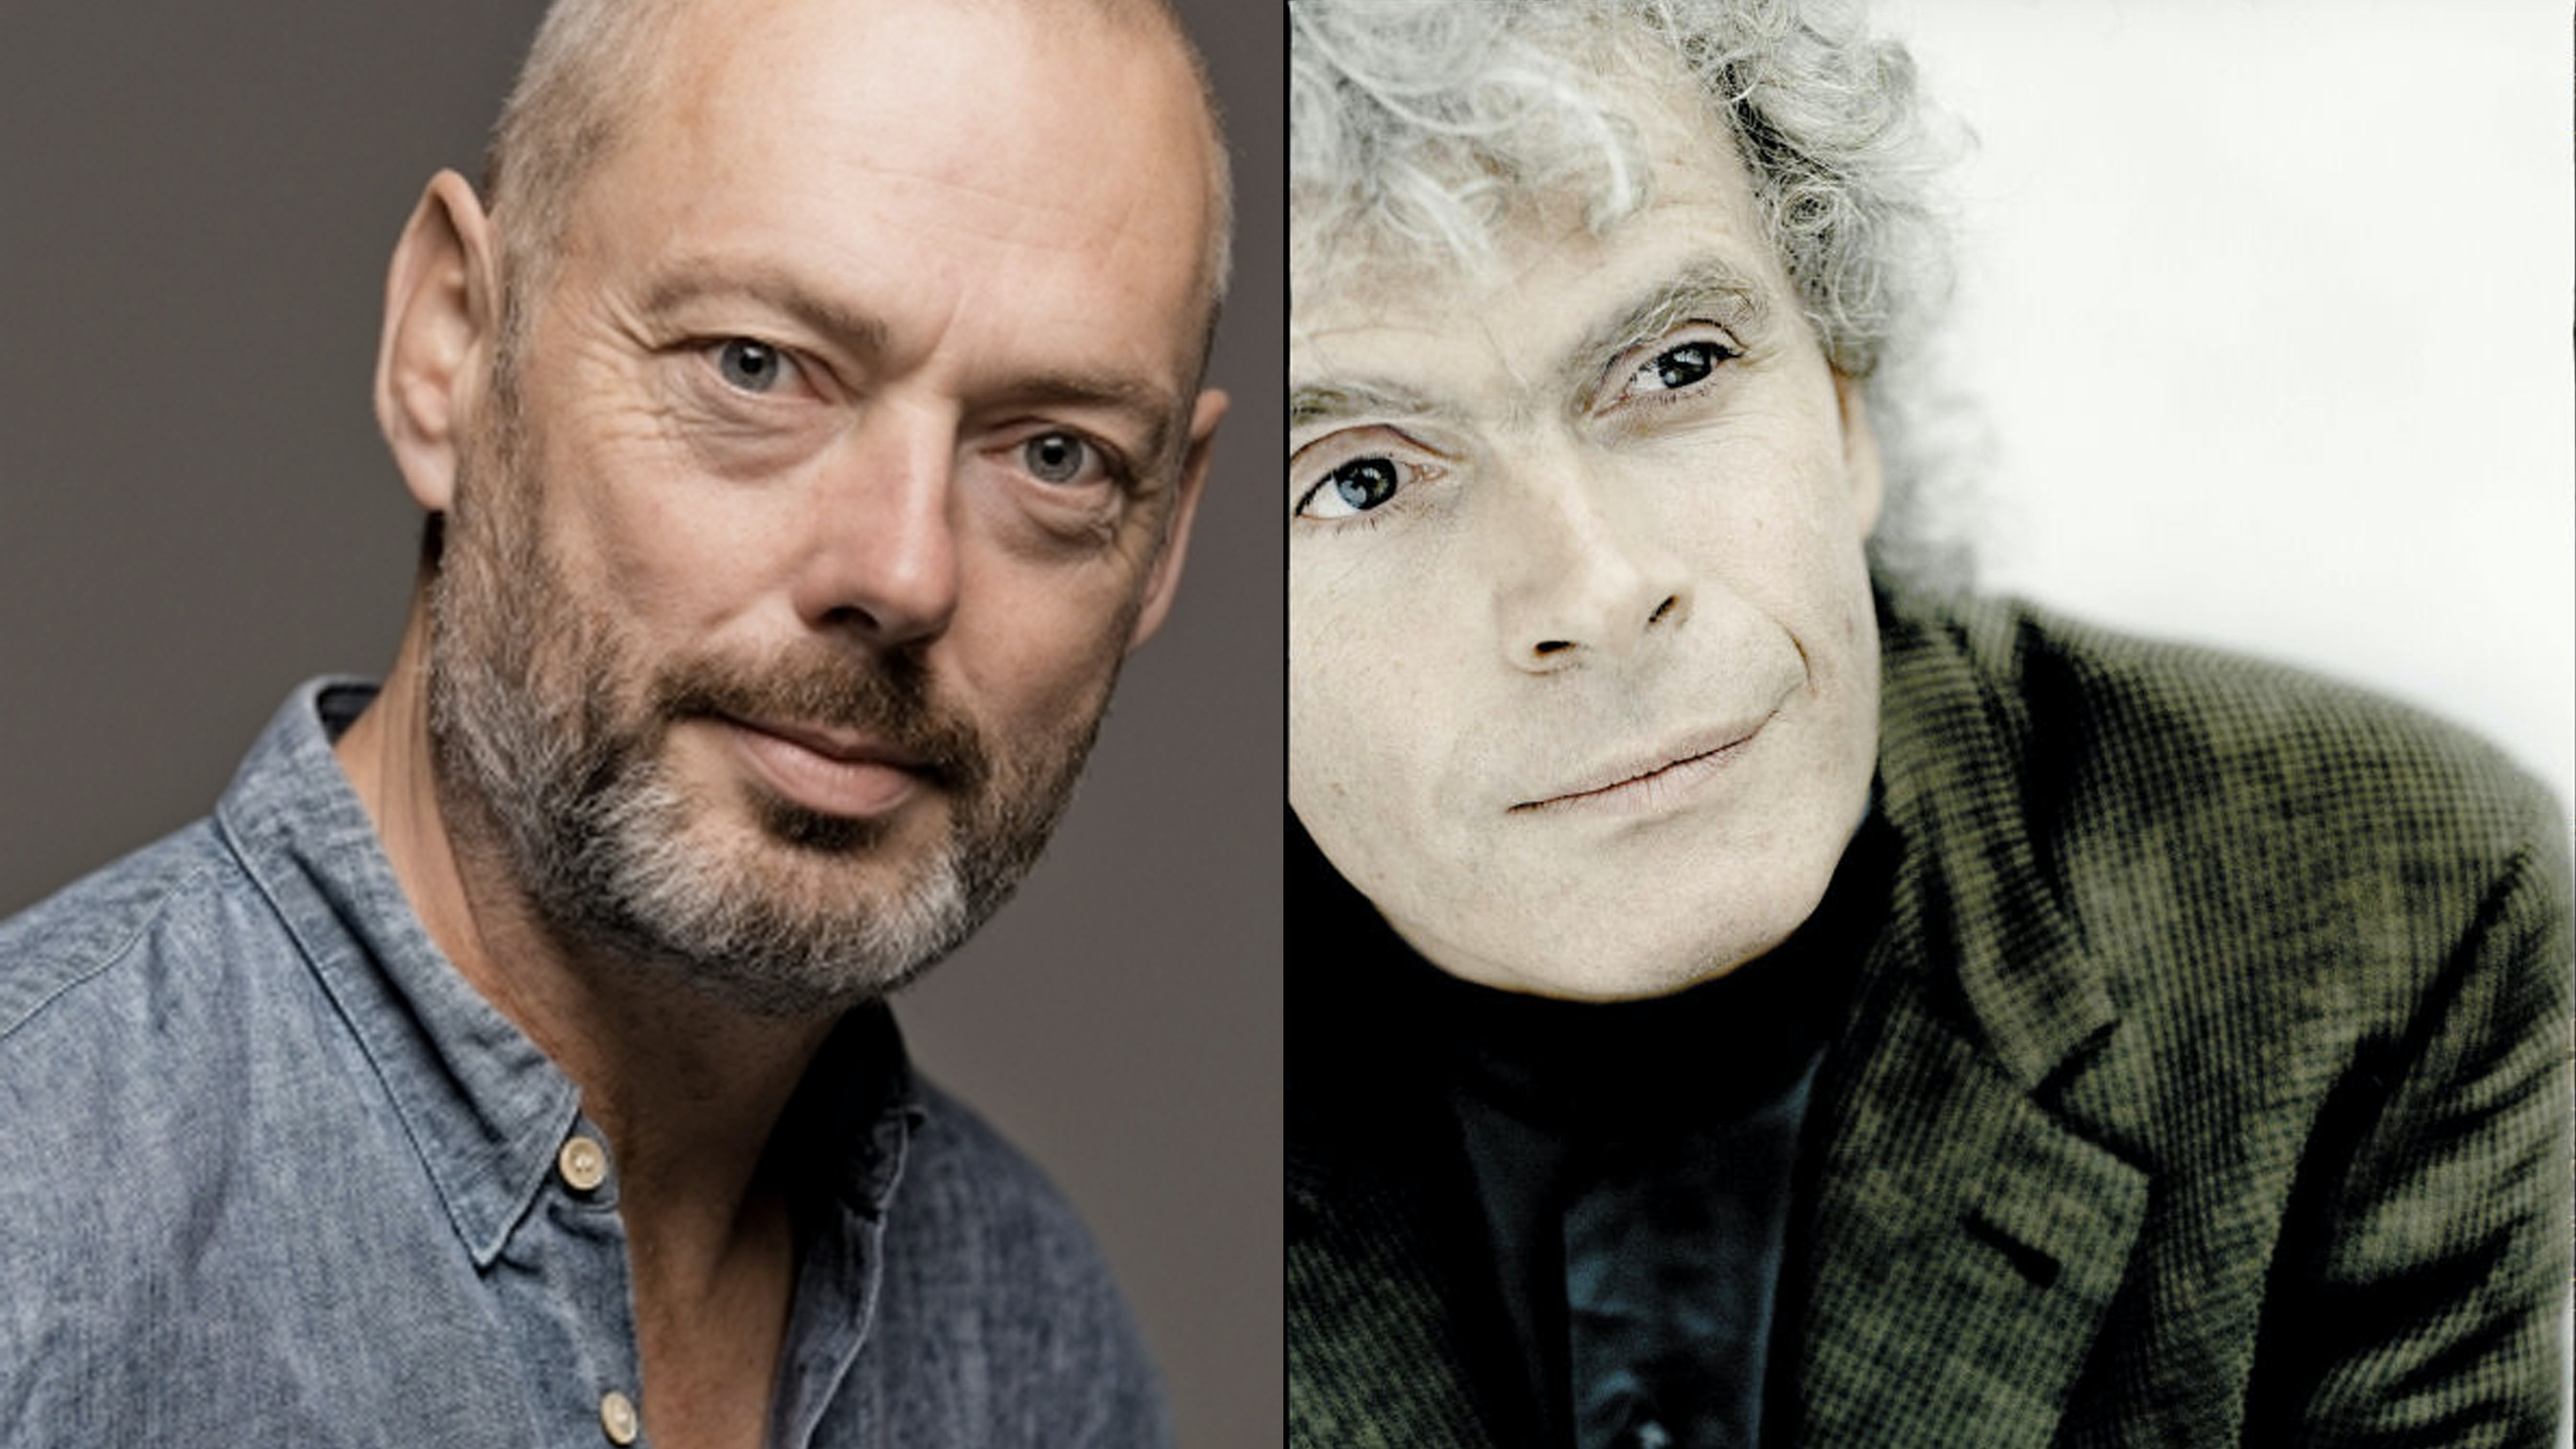 Sir Simon Rattle conducts Schubert's Winterreise – a composed interpretation for tenor and small orchestra by Hans Zender